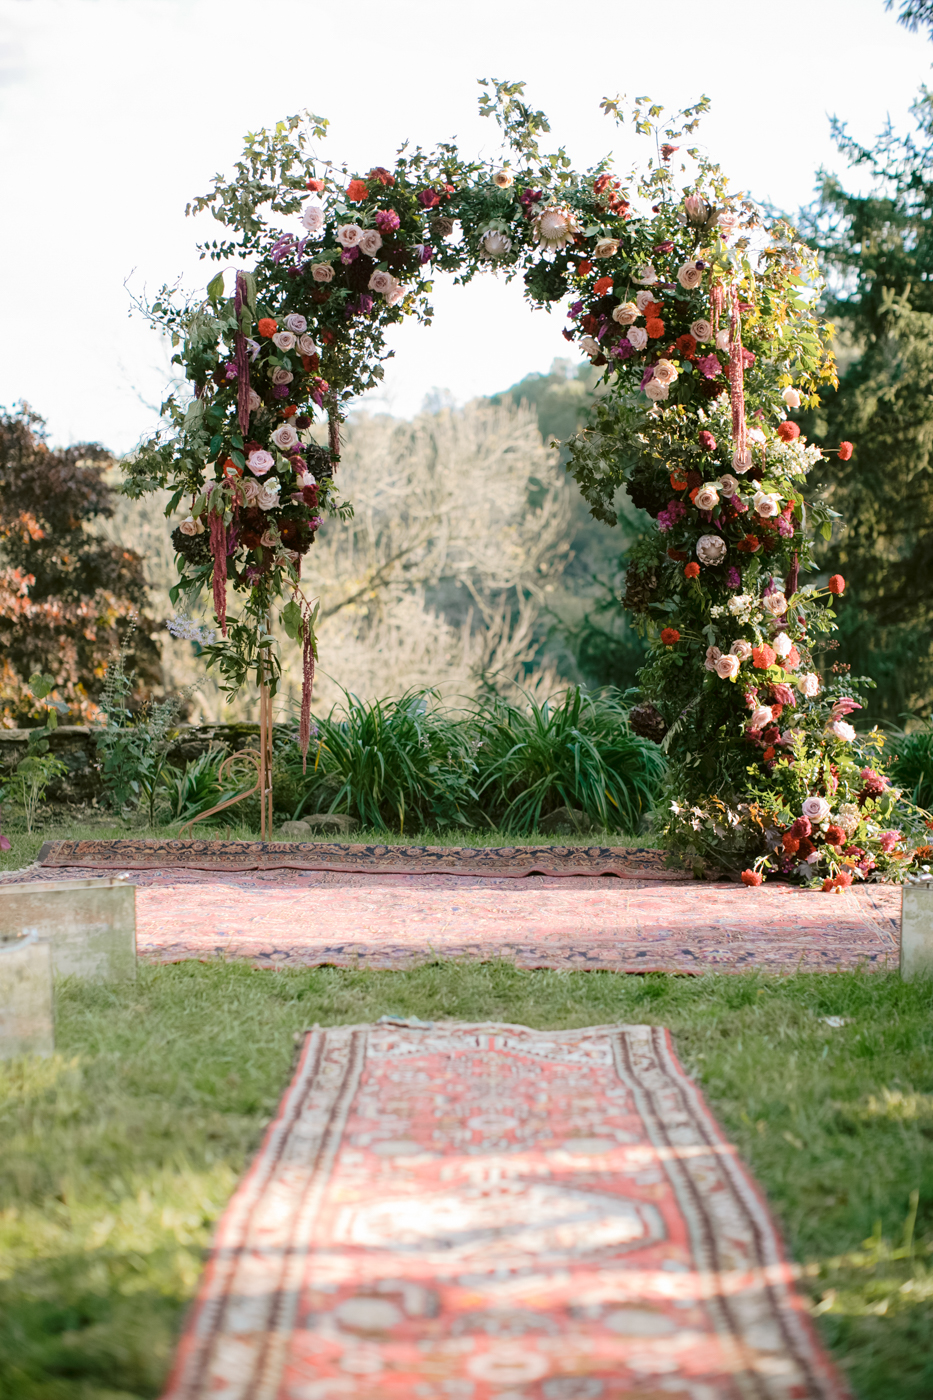 welkinweir-philadelphia-mainline-elegant-luxury-rustic-country-estate-wedding-photography-philly-photographer-fall-52.jpg